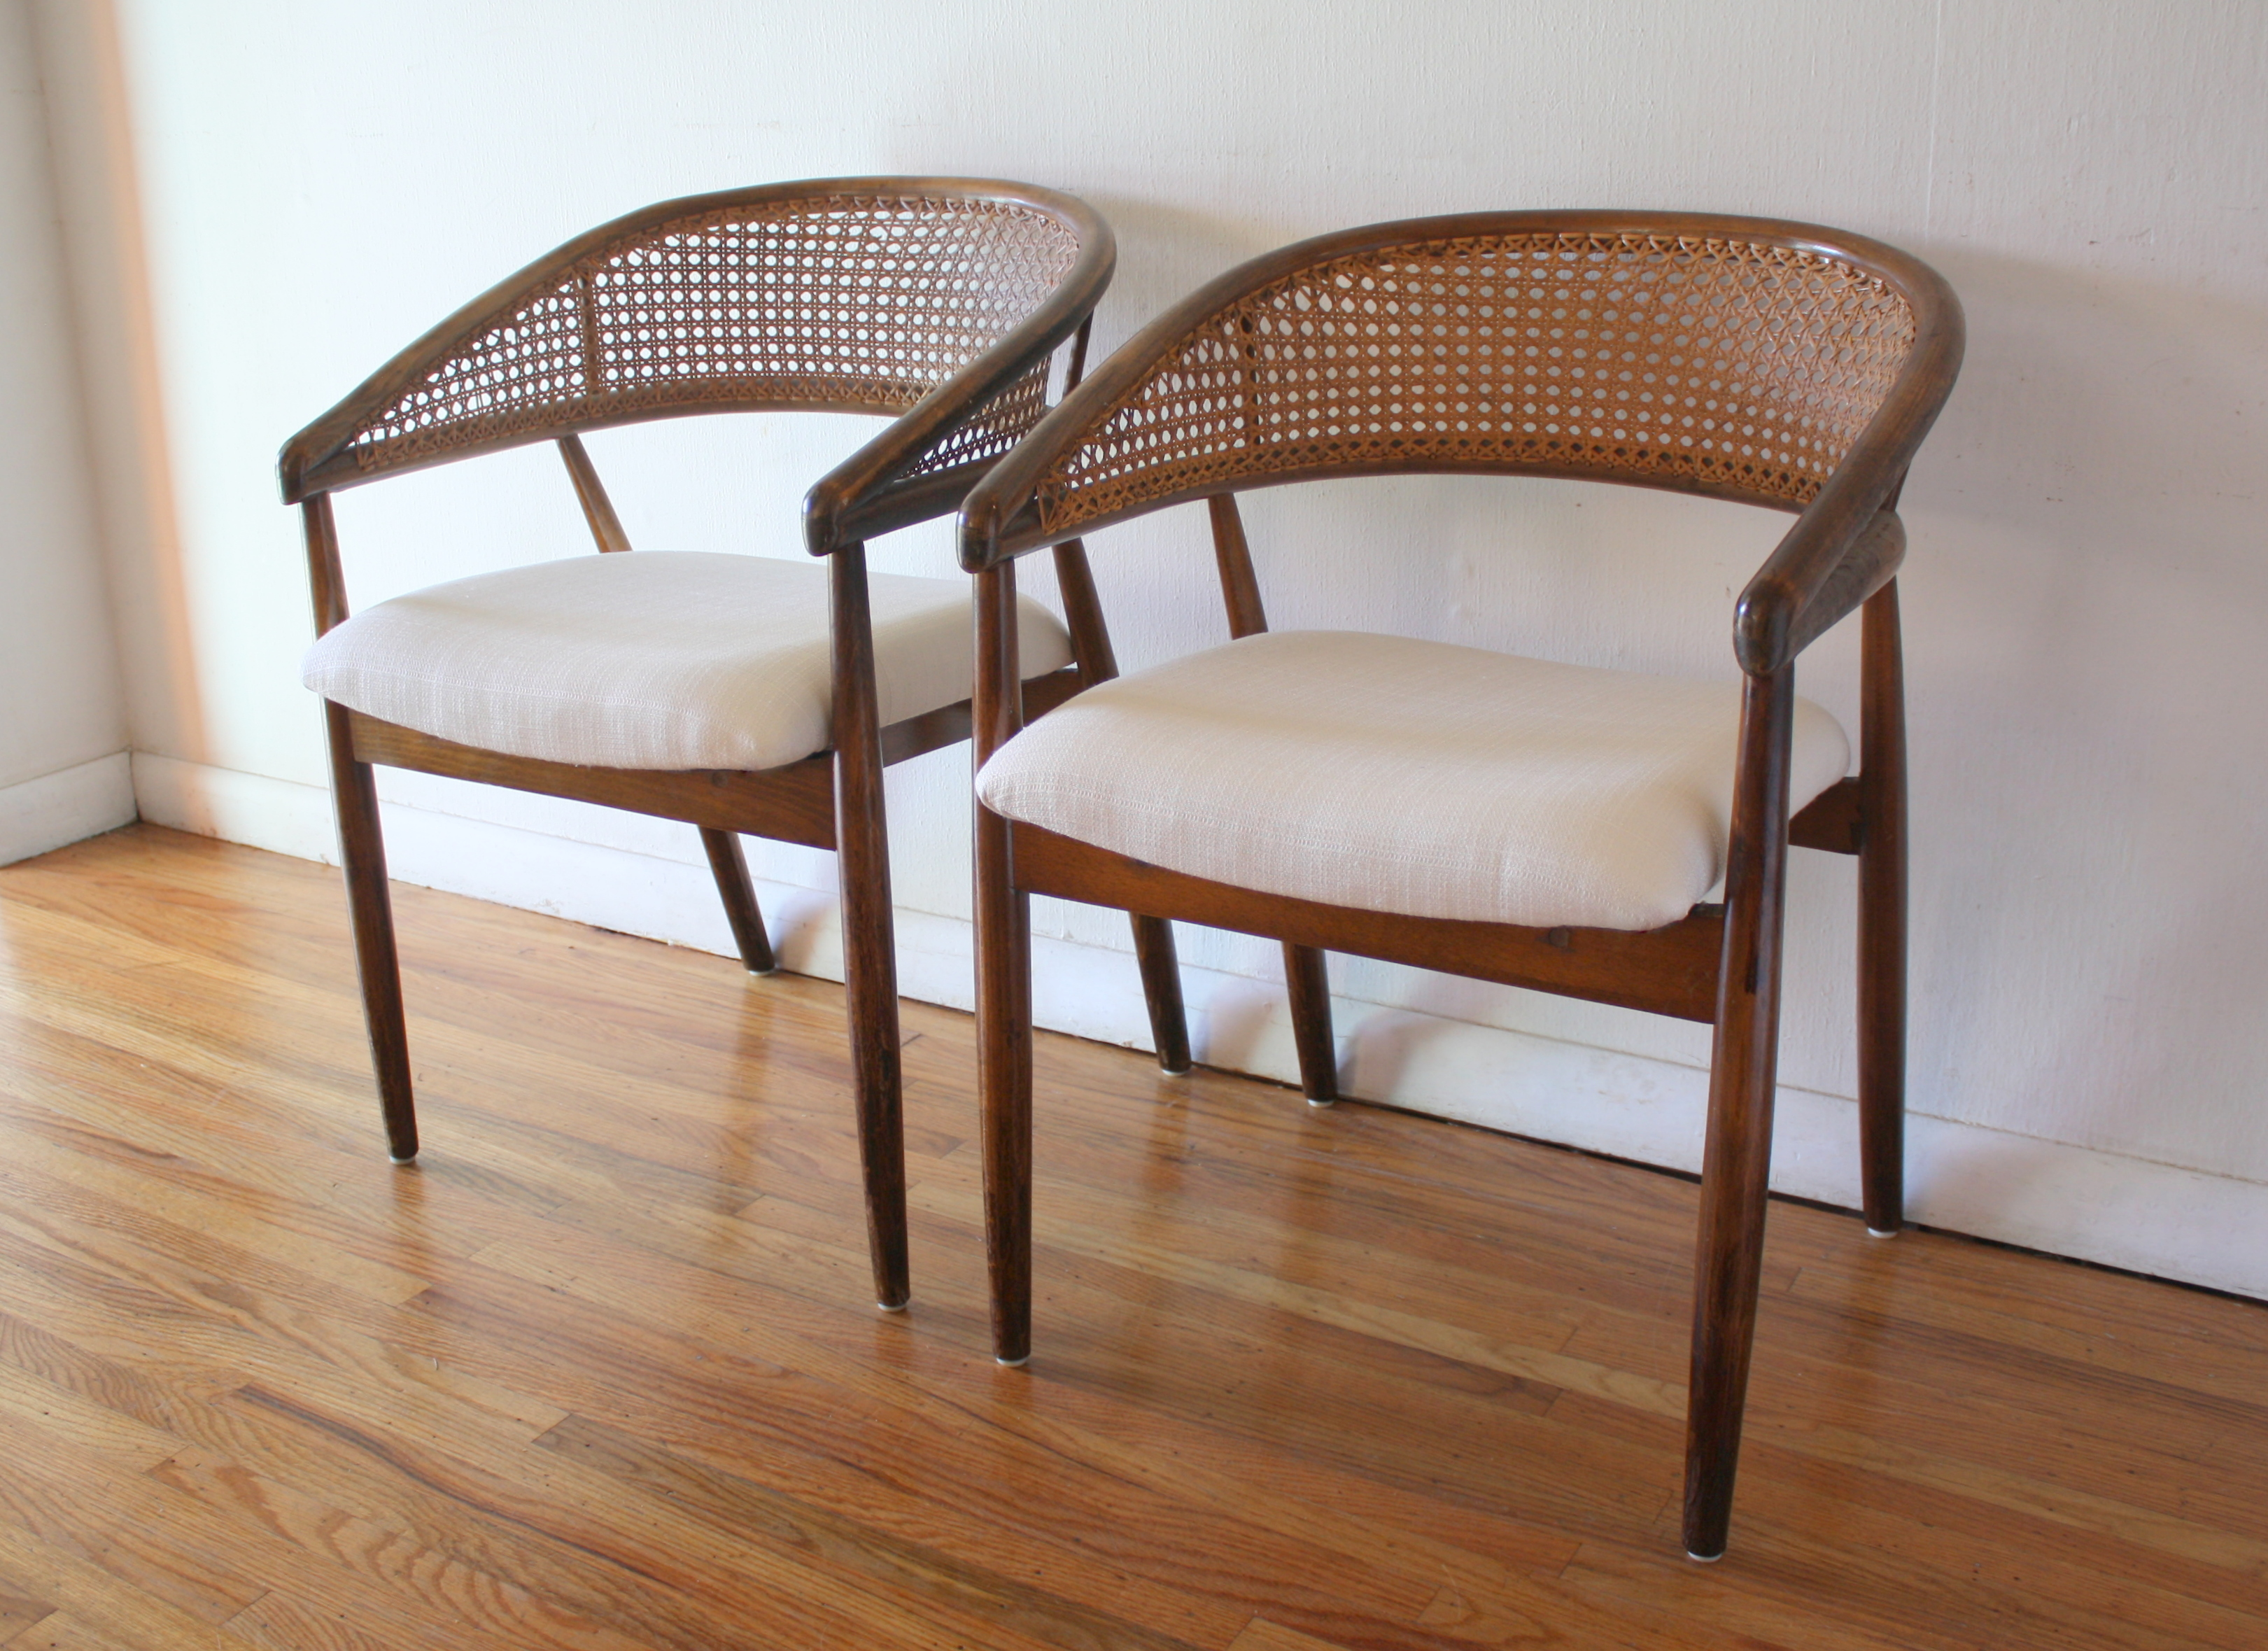 Awesome Mcm Pair Of Rattan Chairs 1